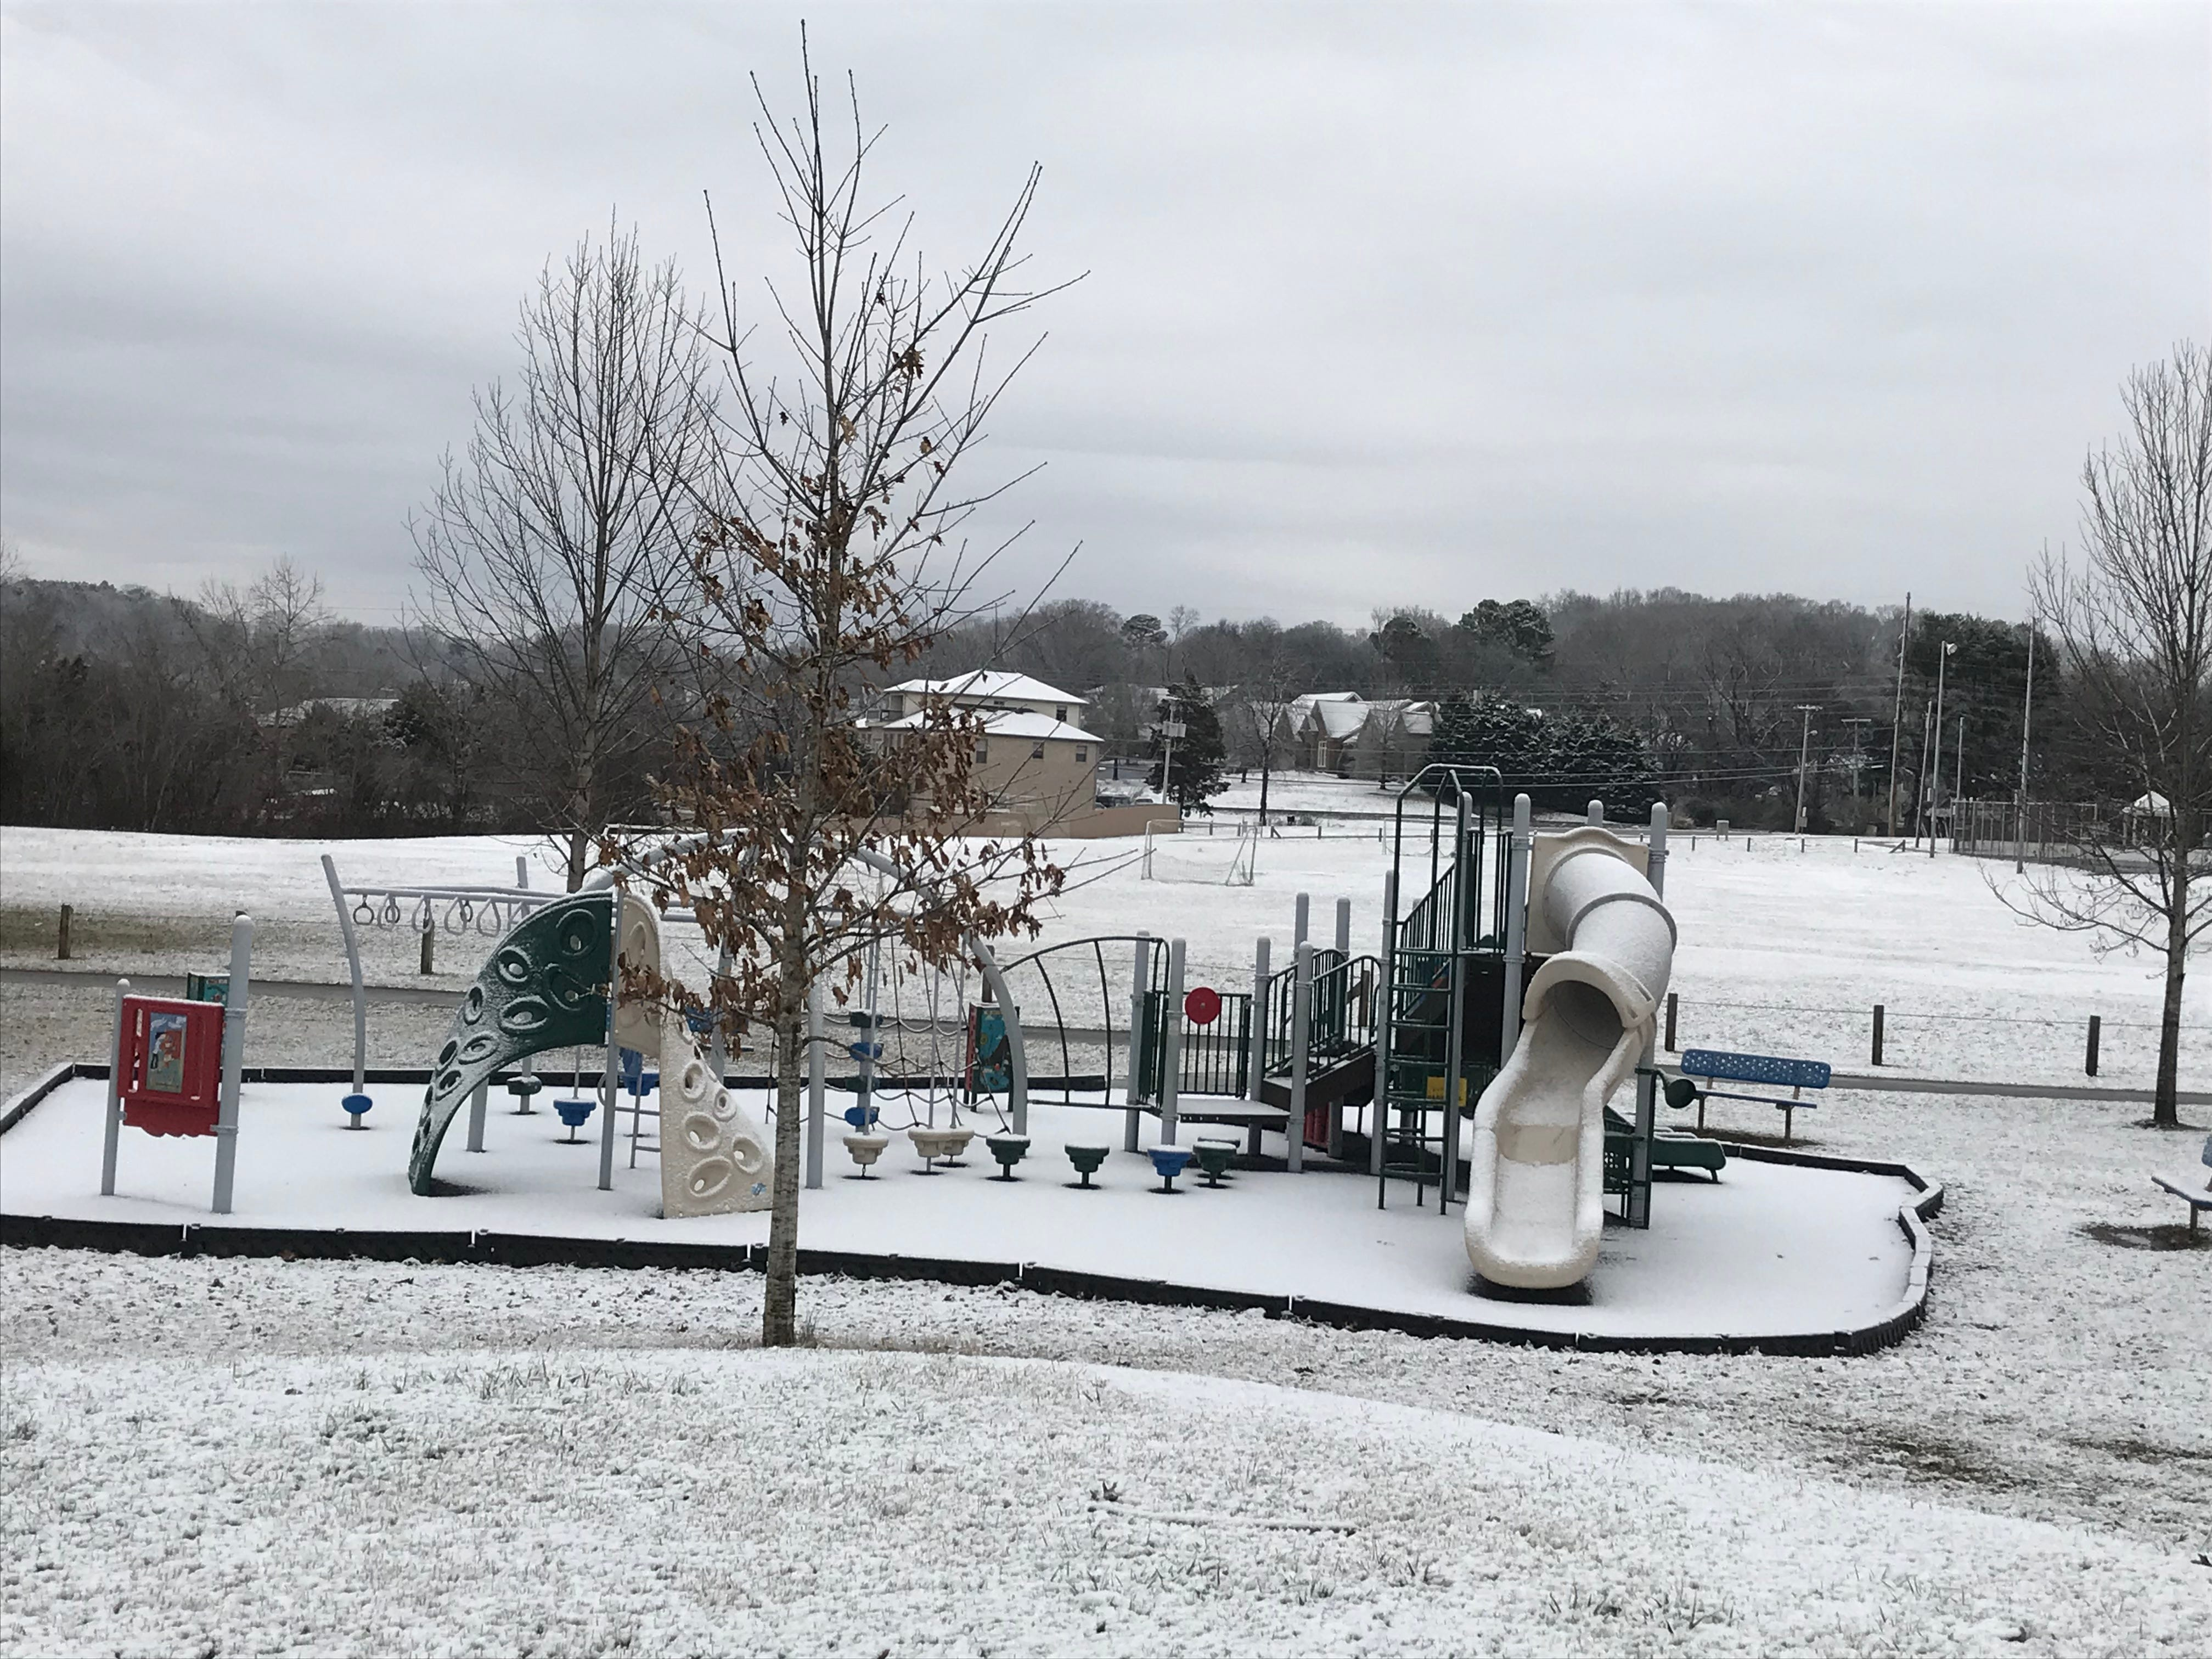 Play equipment is covered in snow at Carl Cowen Park after a light snowfall in Knoxville on Tuesday, Jan. 29, 2019.